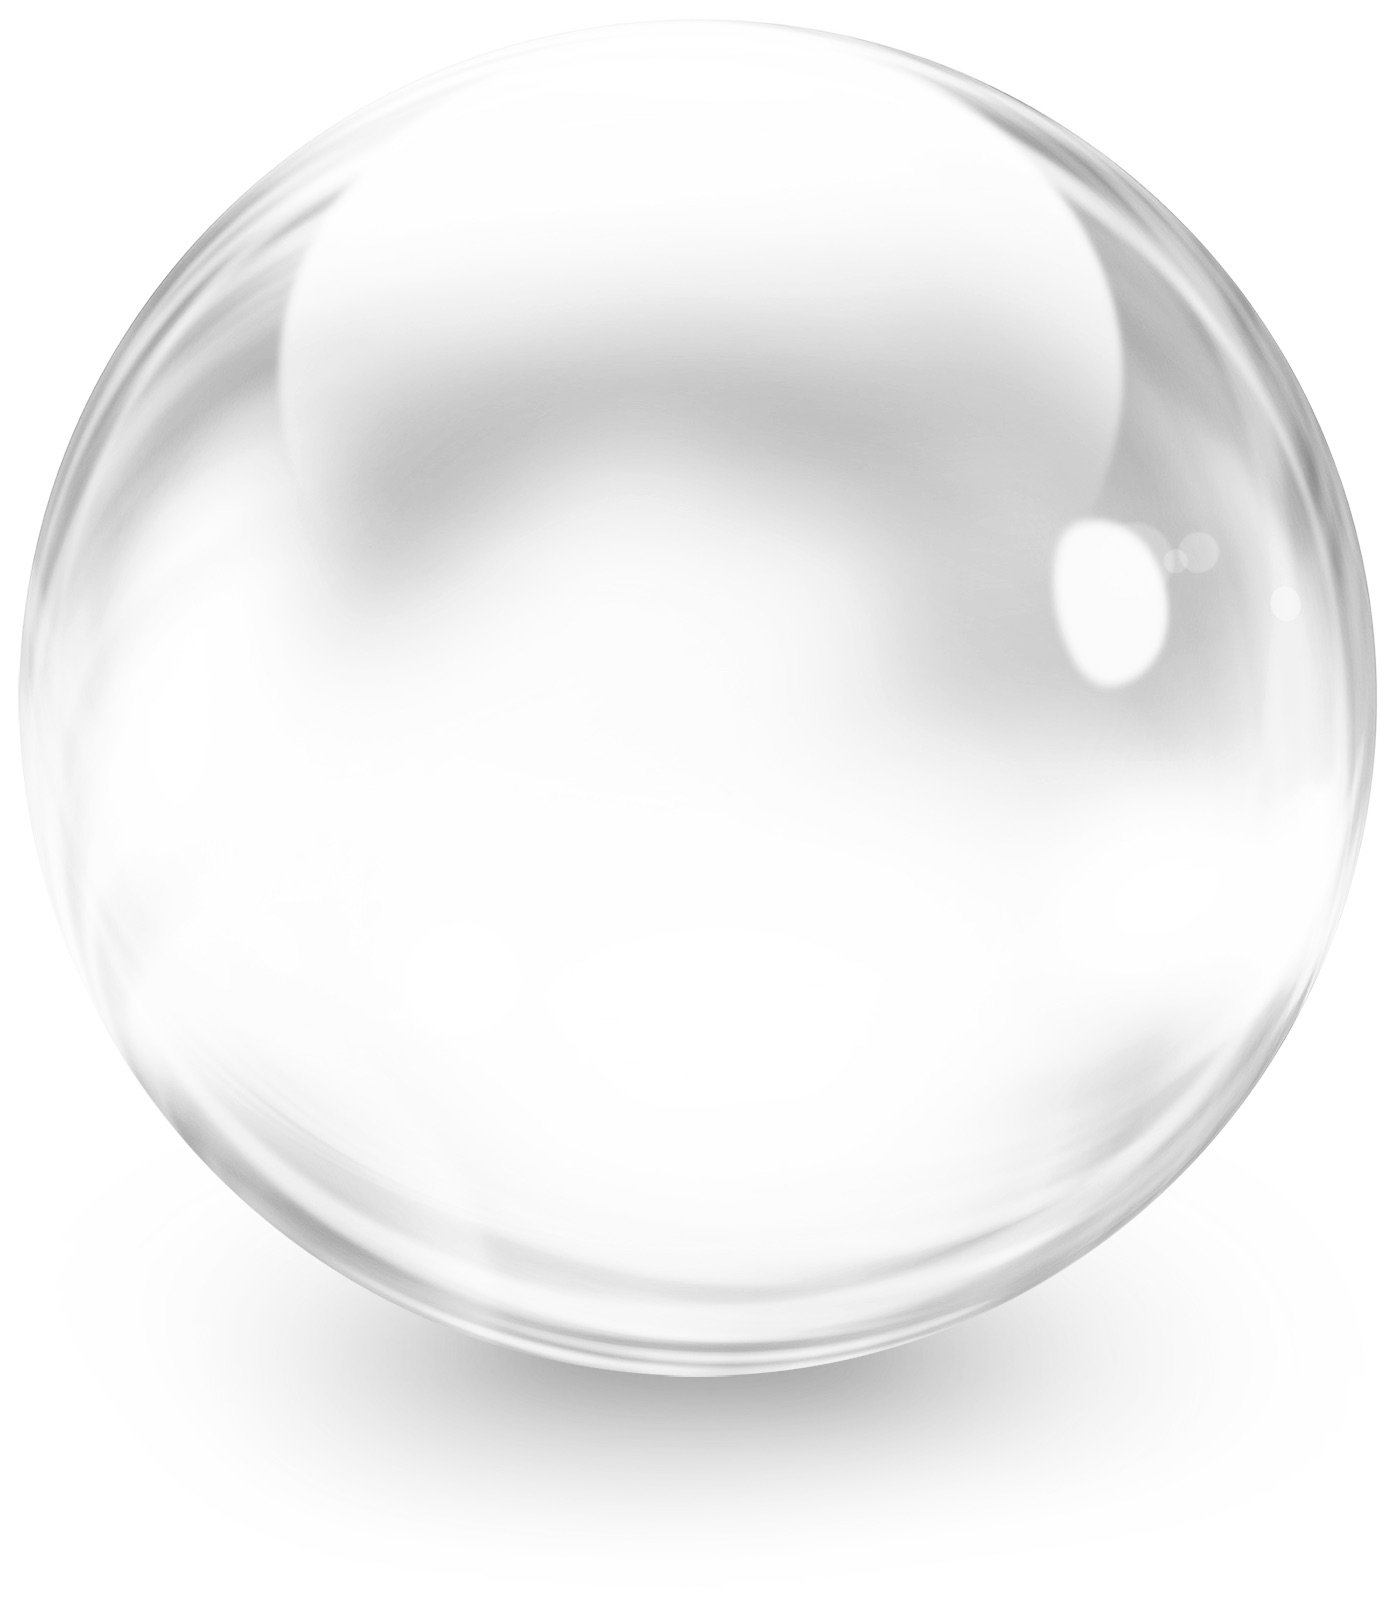 White Transparent Bubble 597.67 Kb